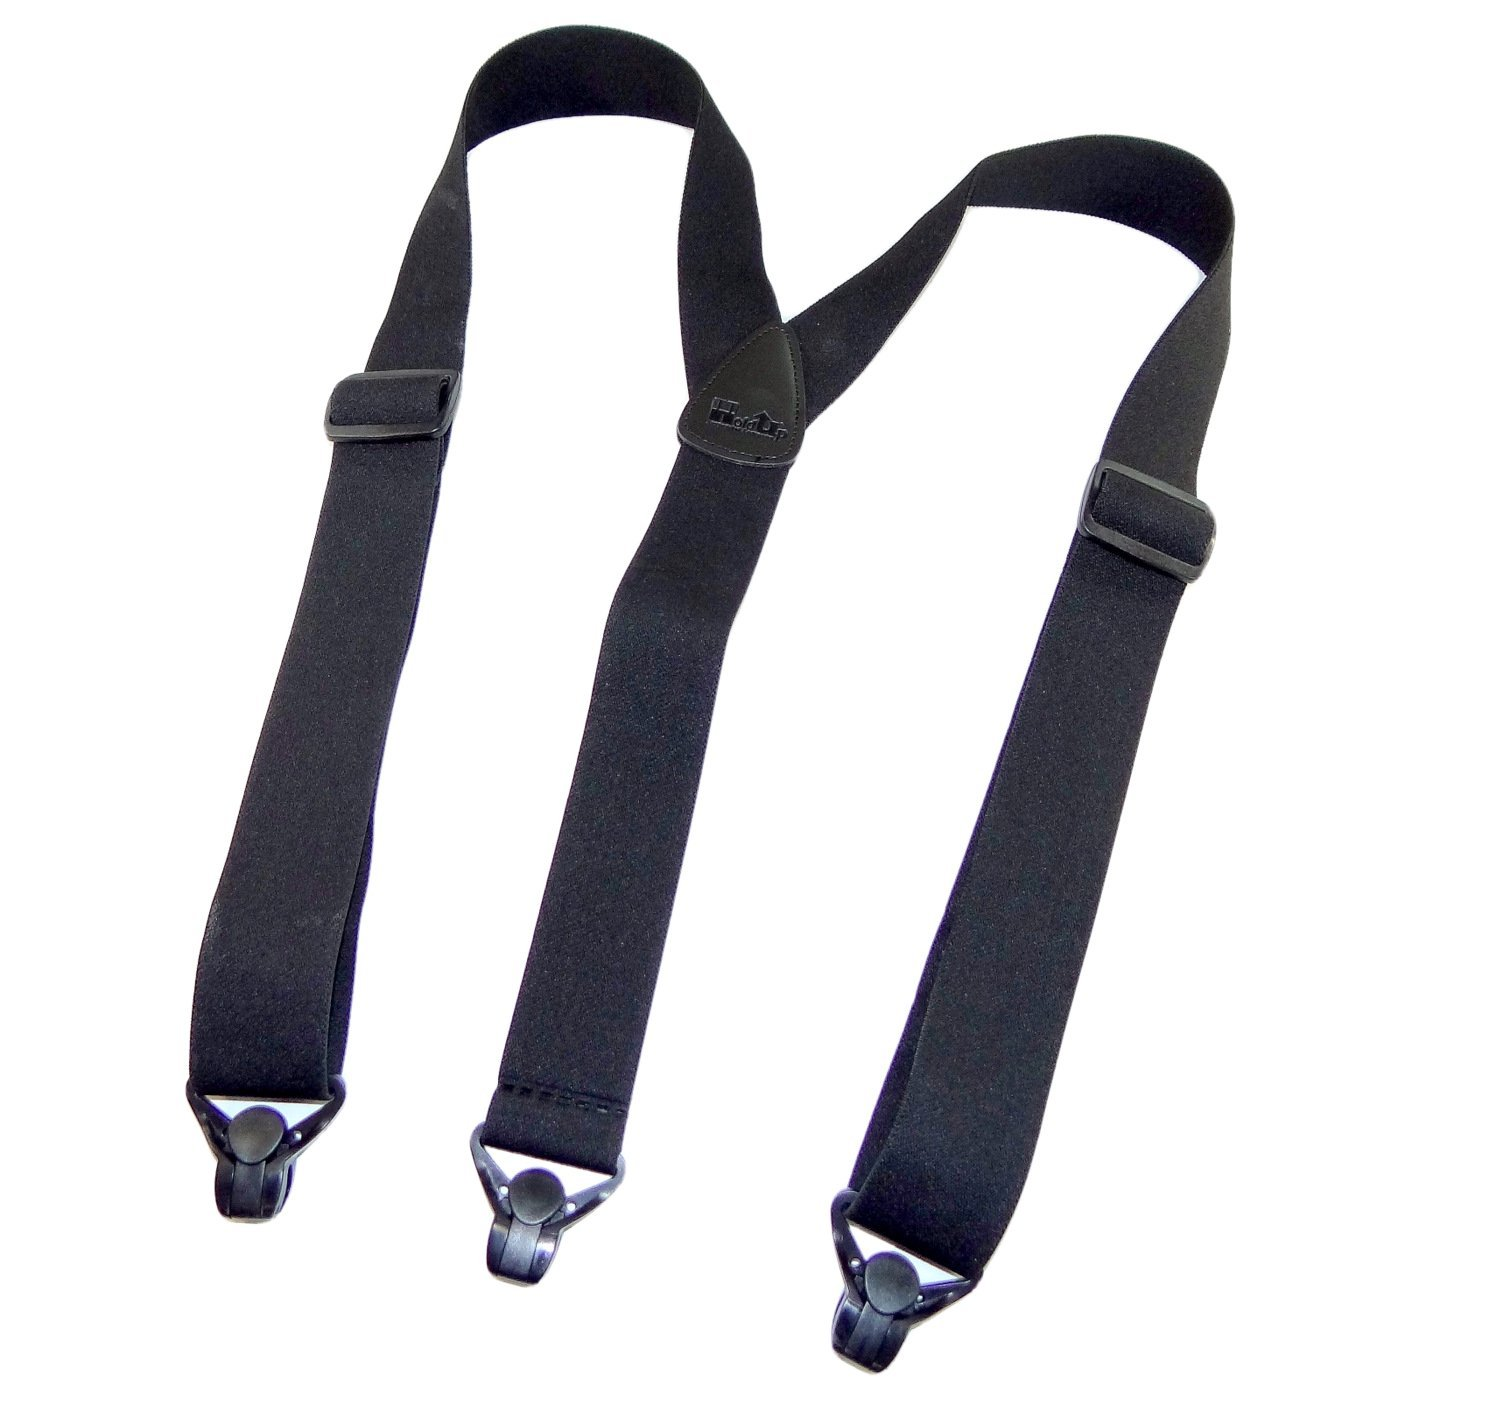 Holdup Suspender Company's No-buzz Airport Friendly Black Suspenders in Y-back Style with Patented composite plastic Gripper Clasps